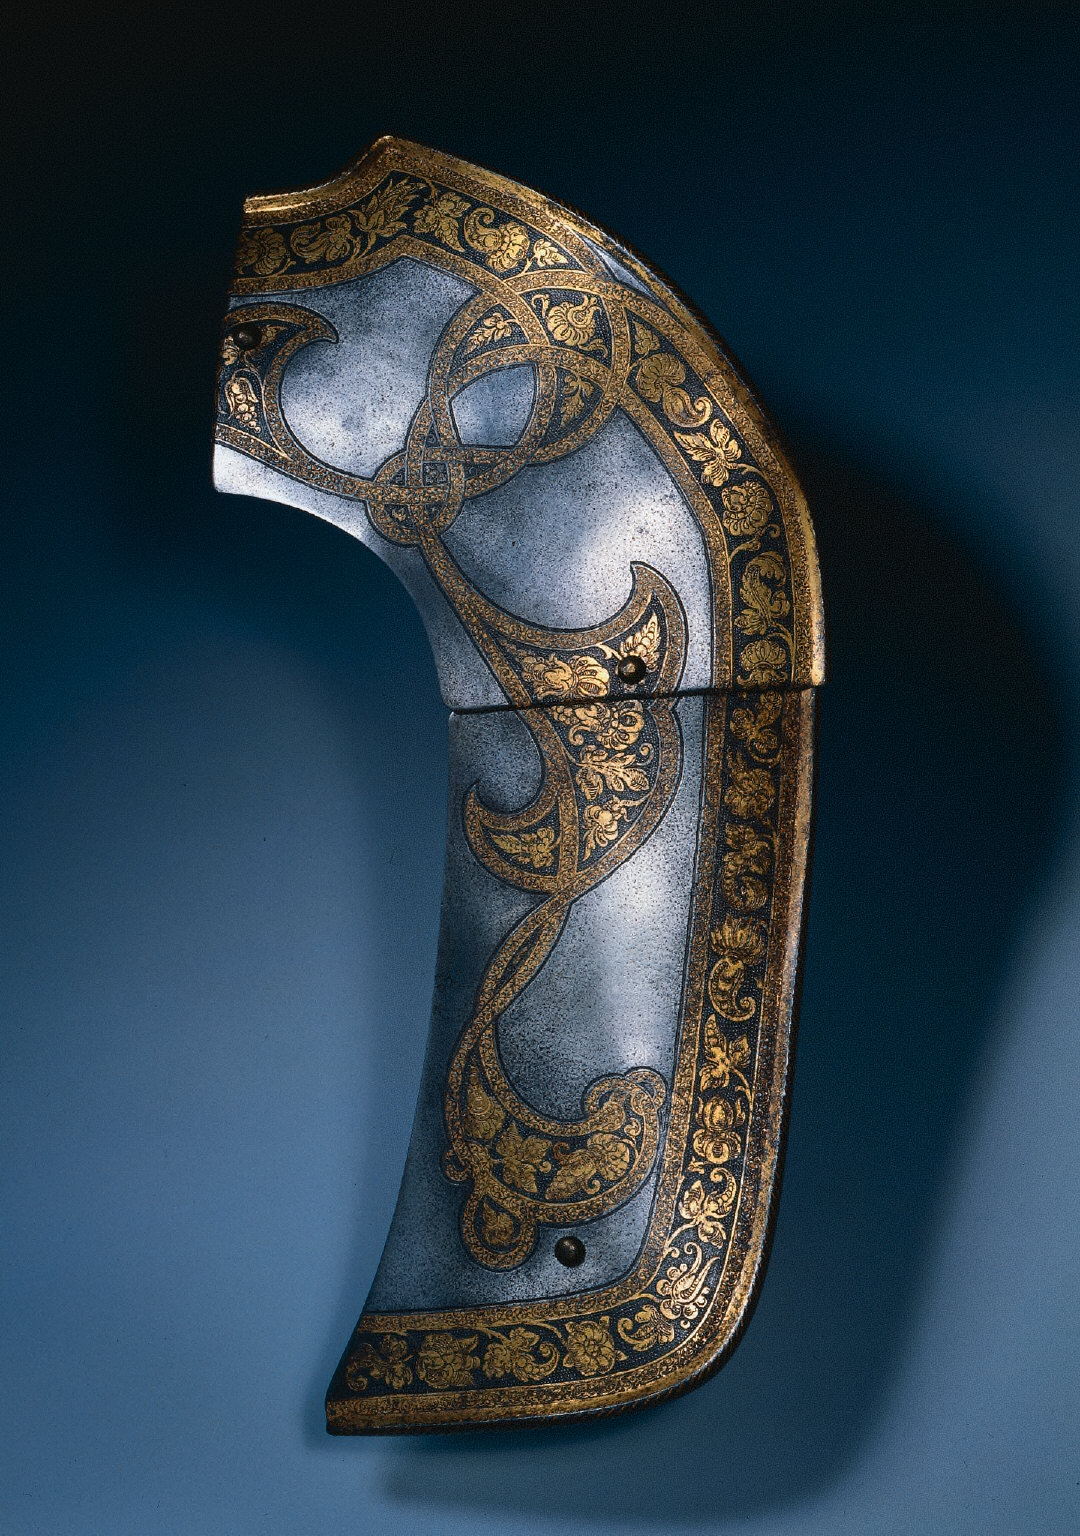 Pommel Plate of a Saddle (from the Garniture of Rudolf II)